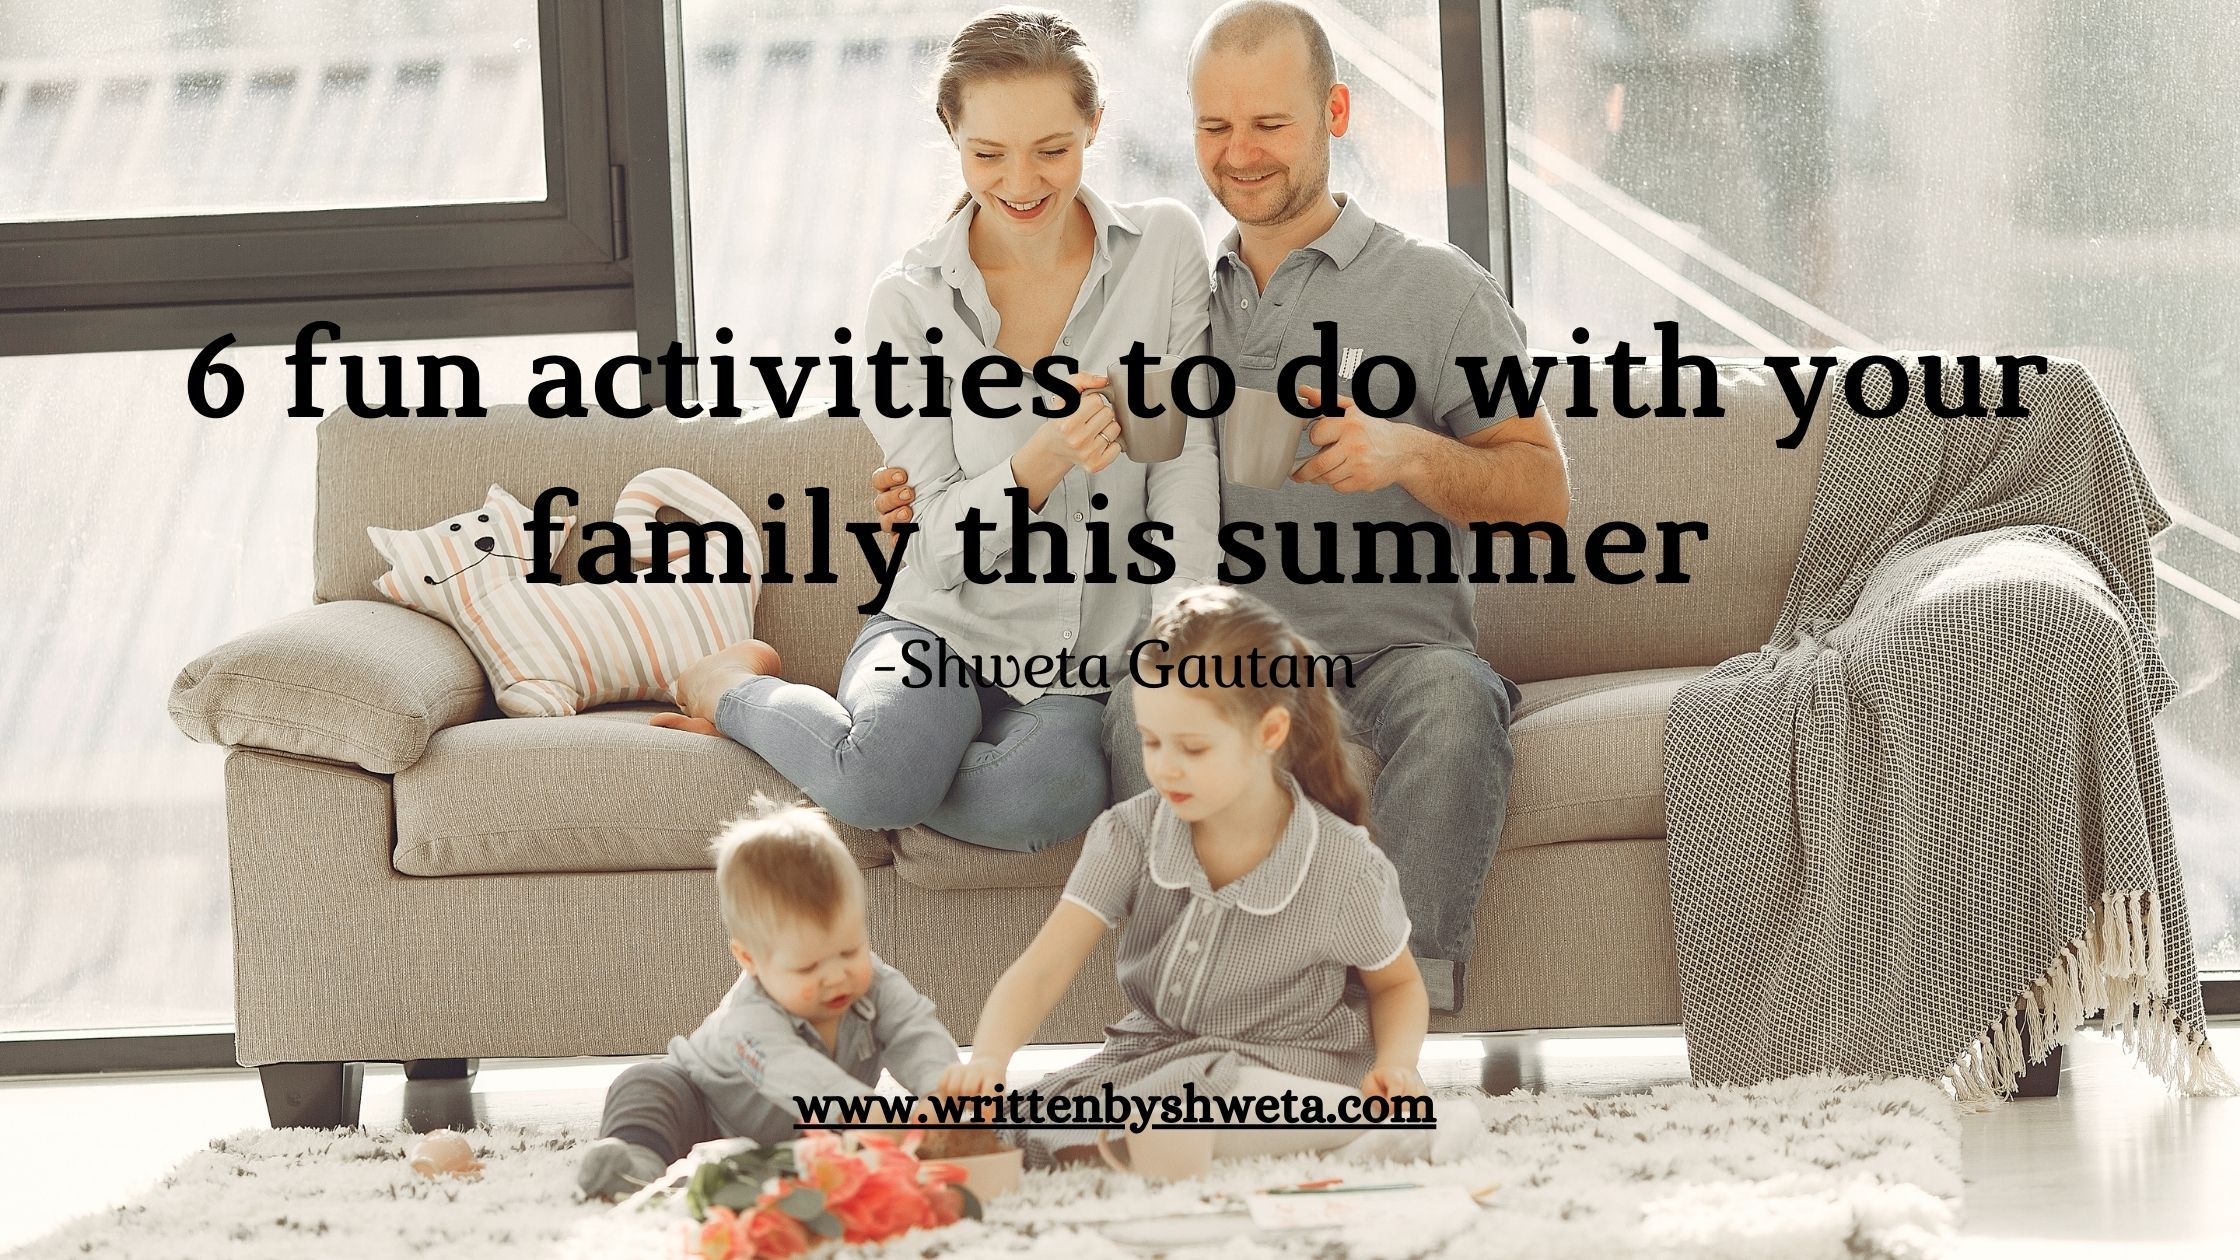 You are currently viewing 6 FUN ACTIVITIES TO DO WITH YOUR FAMILY THIS SUMMER